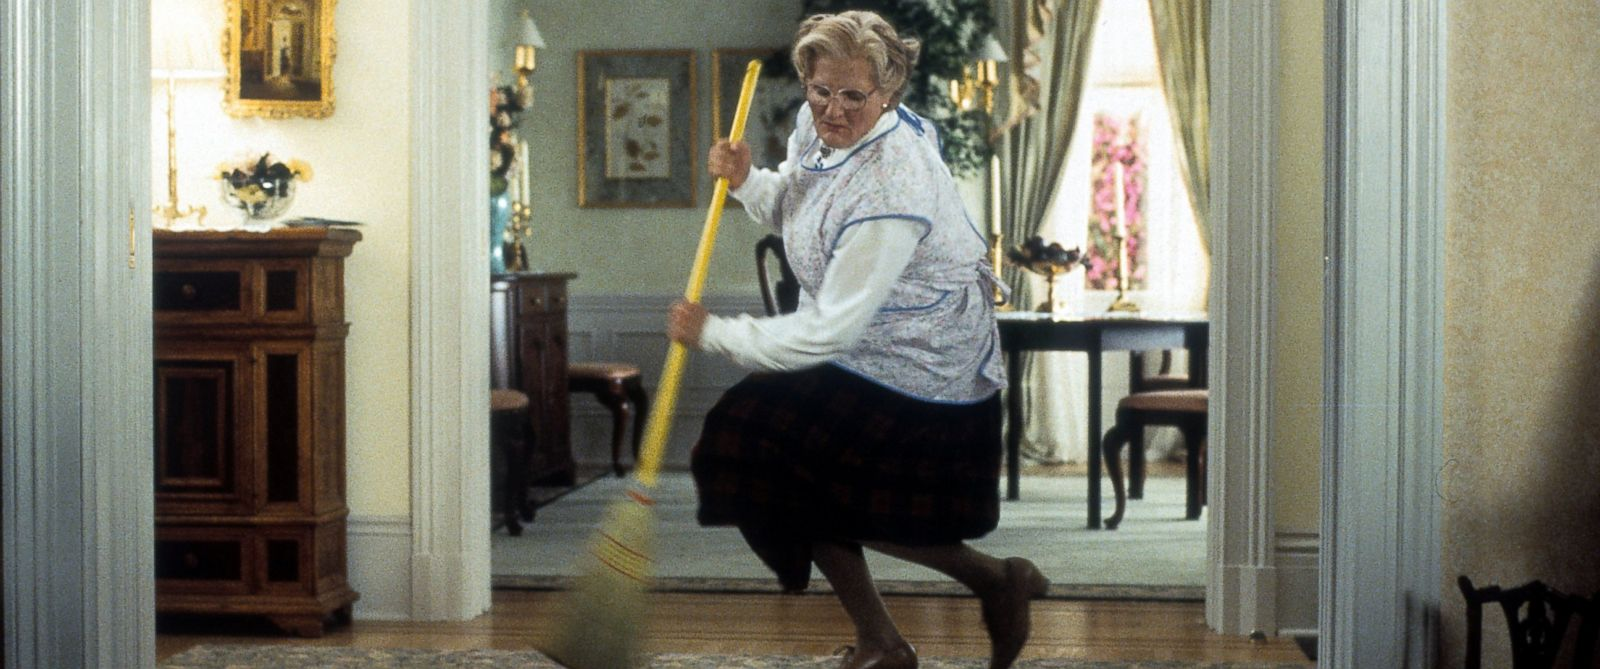 Home Used In Mrs Doubtfire On Sale For 445 Million